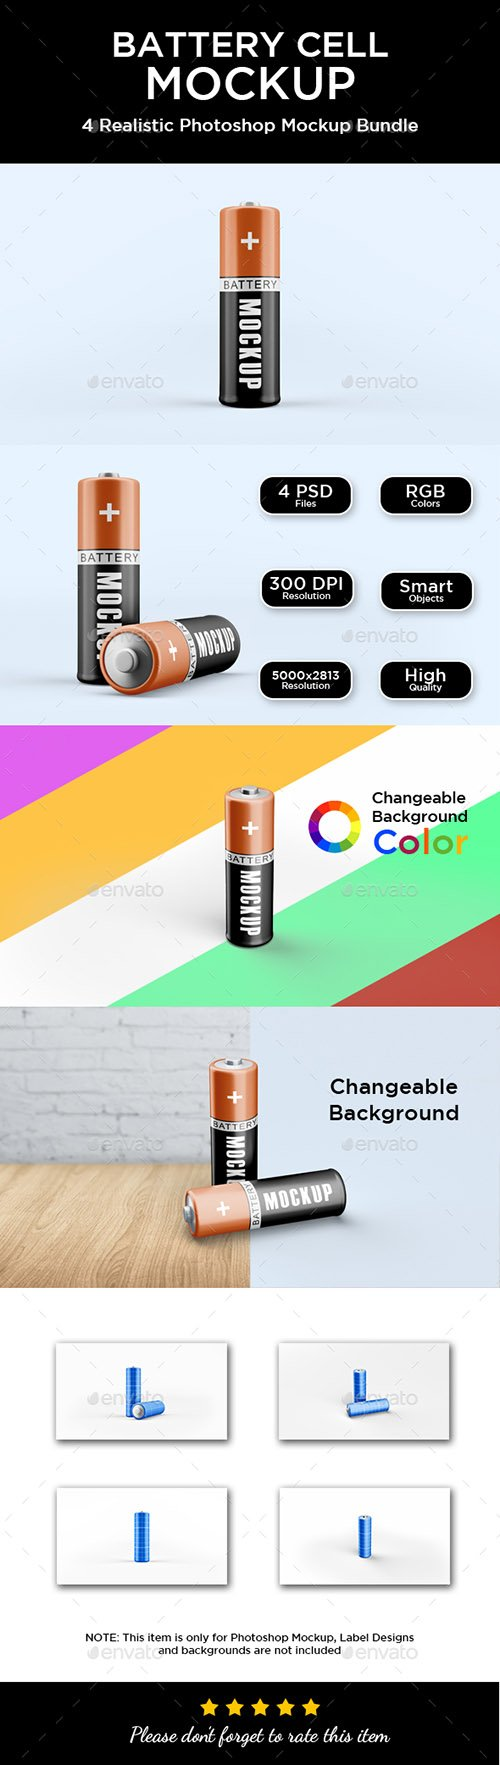 Graphicriver - Battery Cell Mockup 21399443